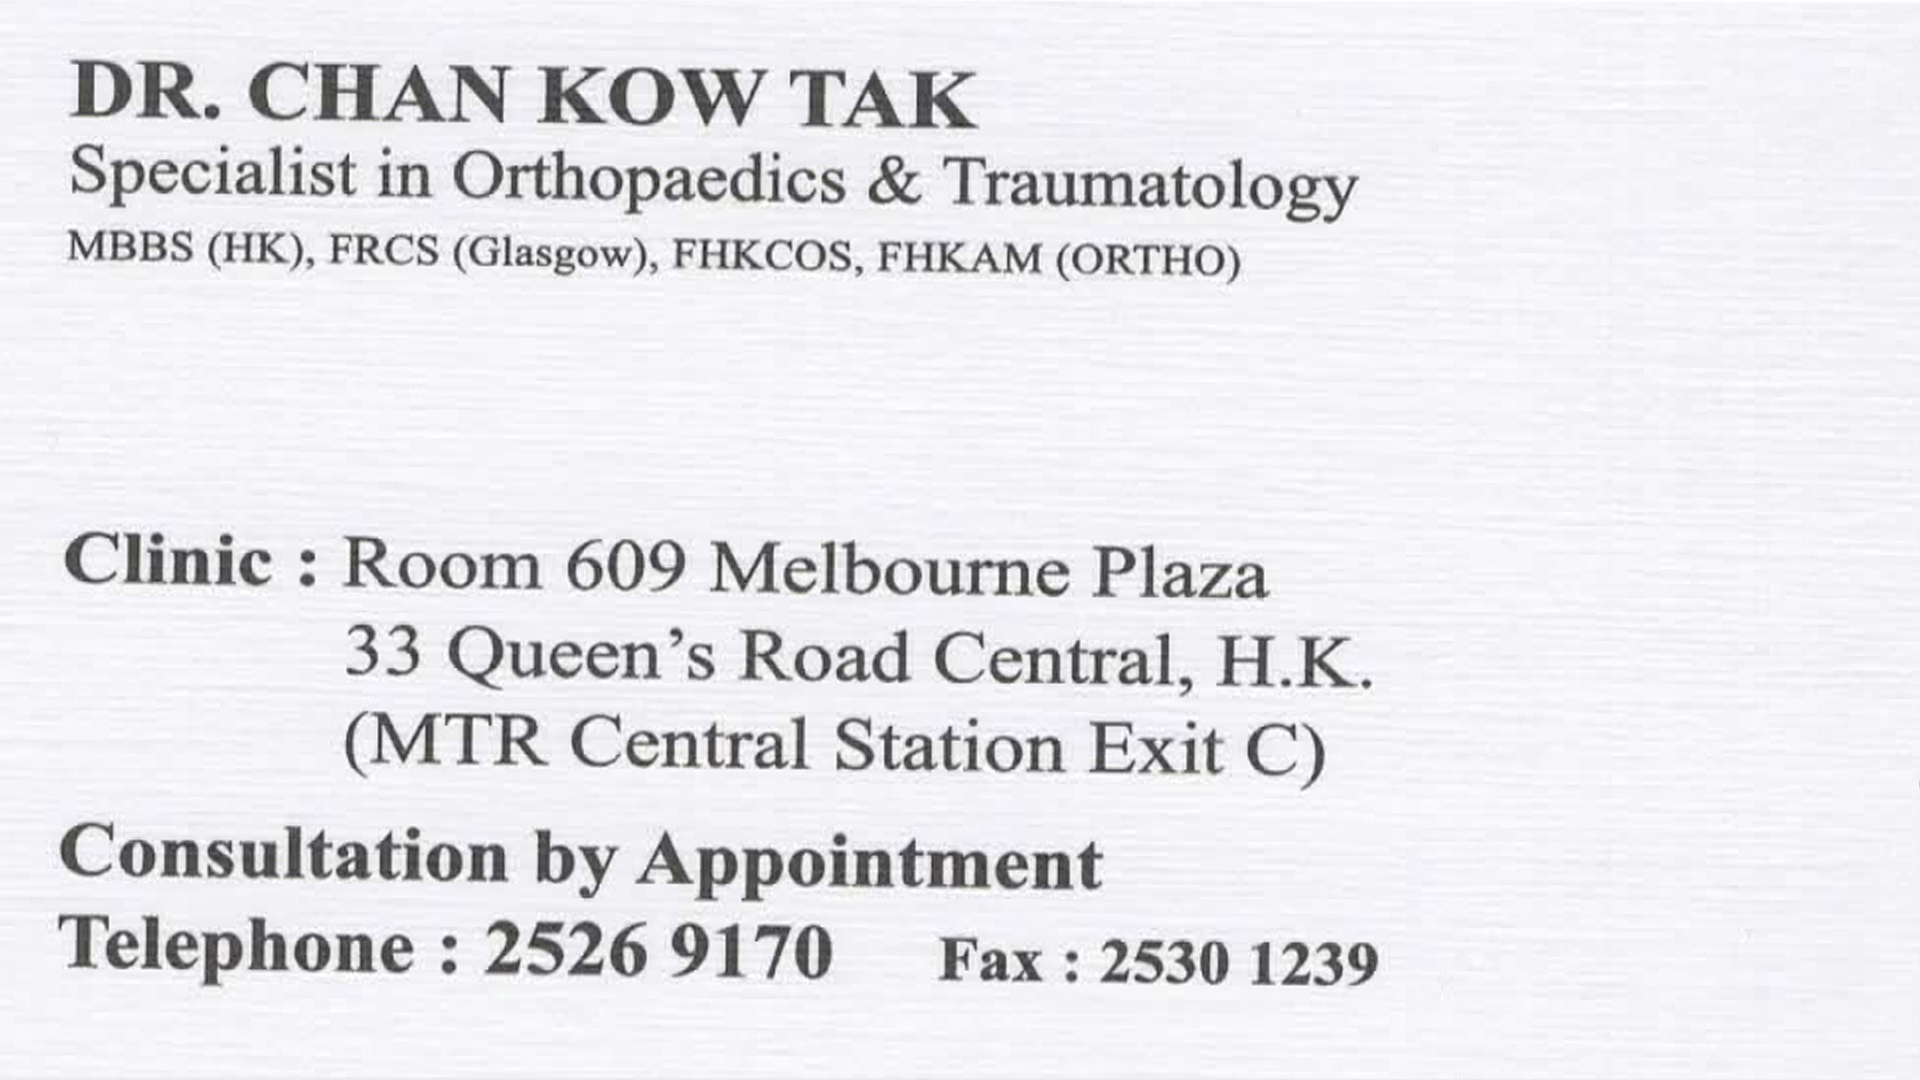 Dr CHAN KOW TAK Name Card